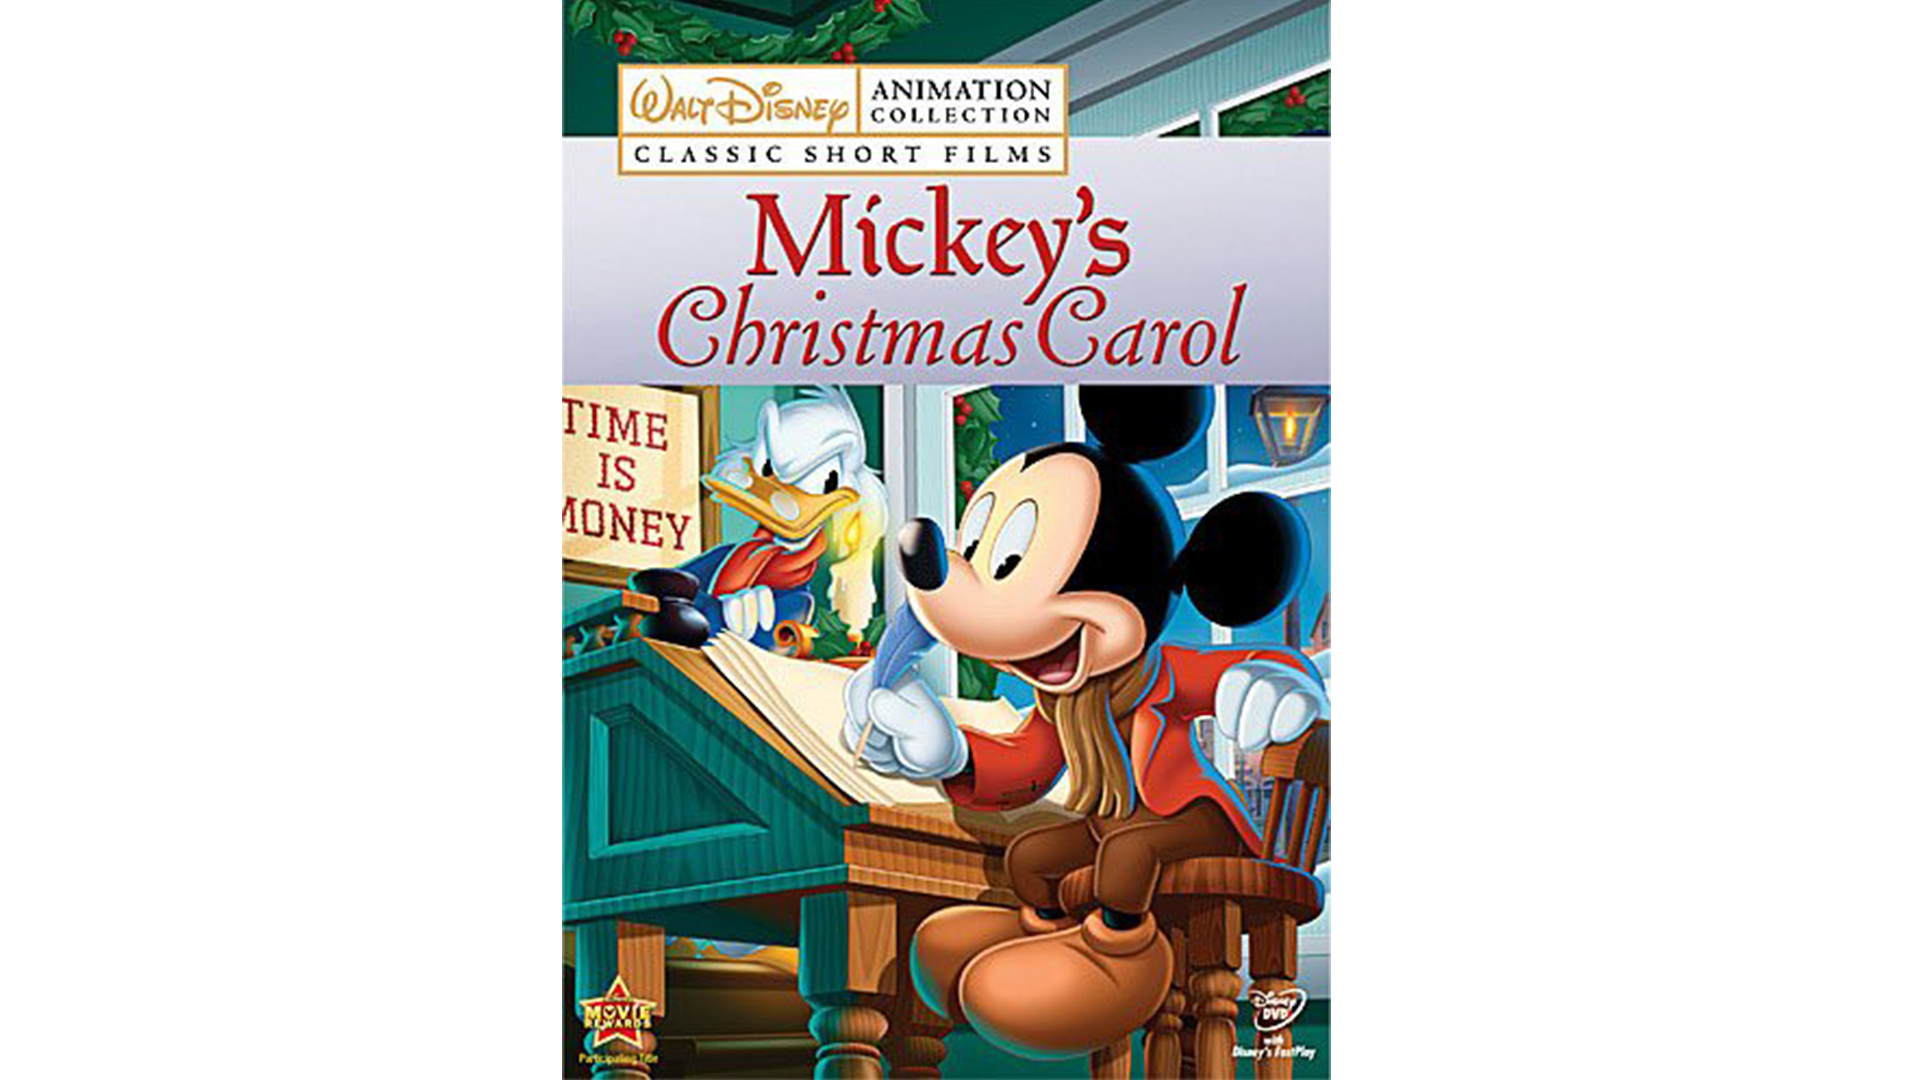 mickeys christmas carol - Best Animated Christmas Movies